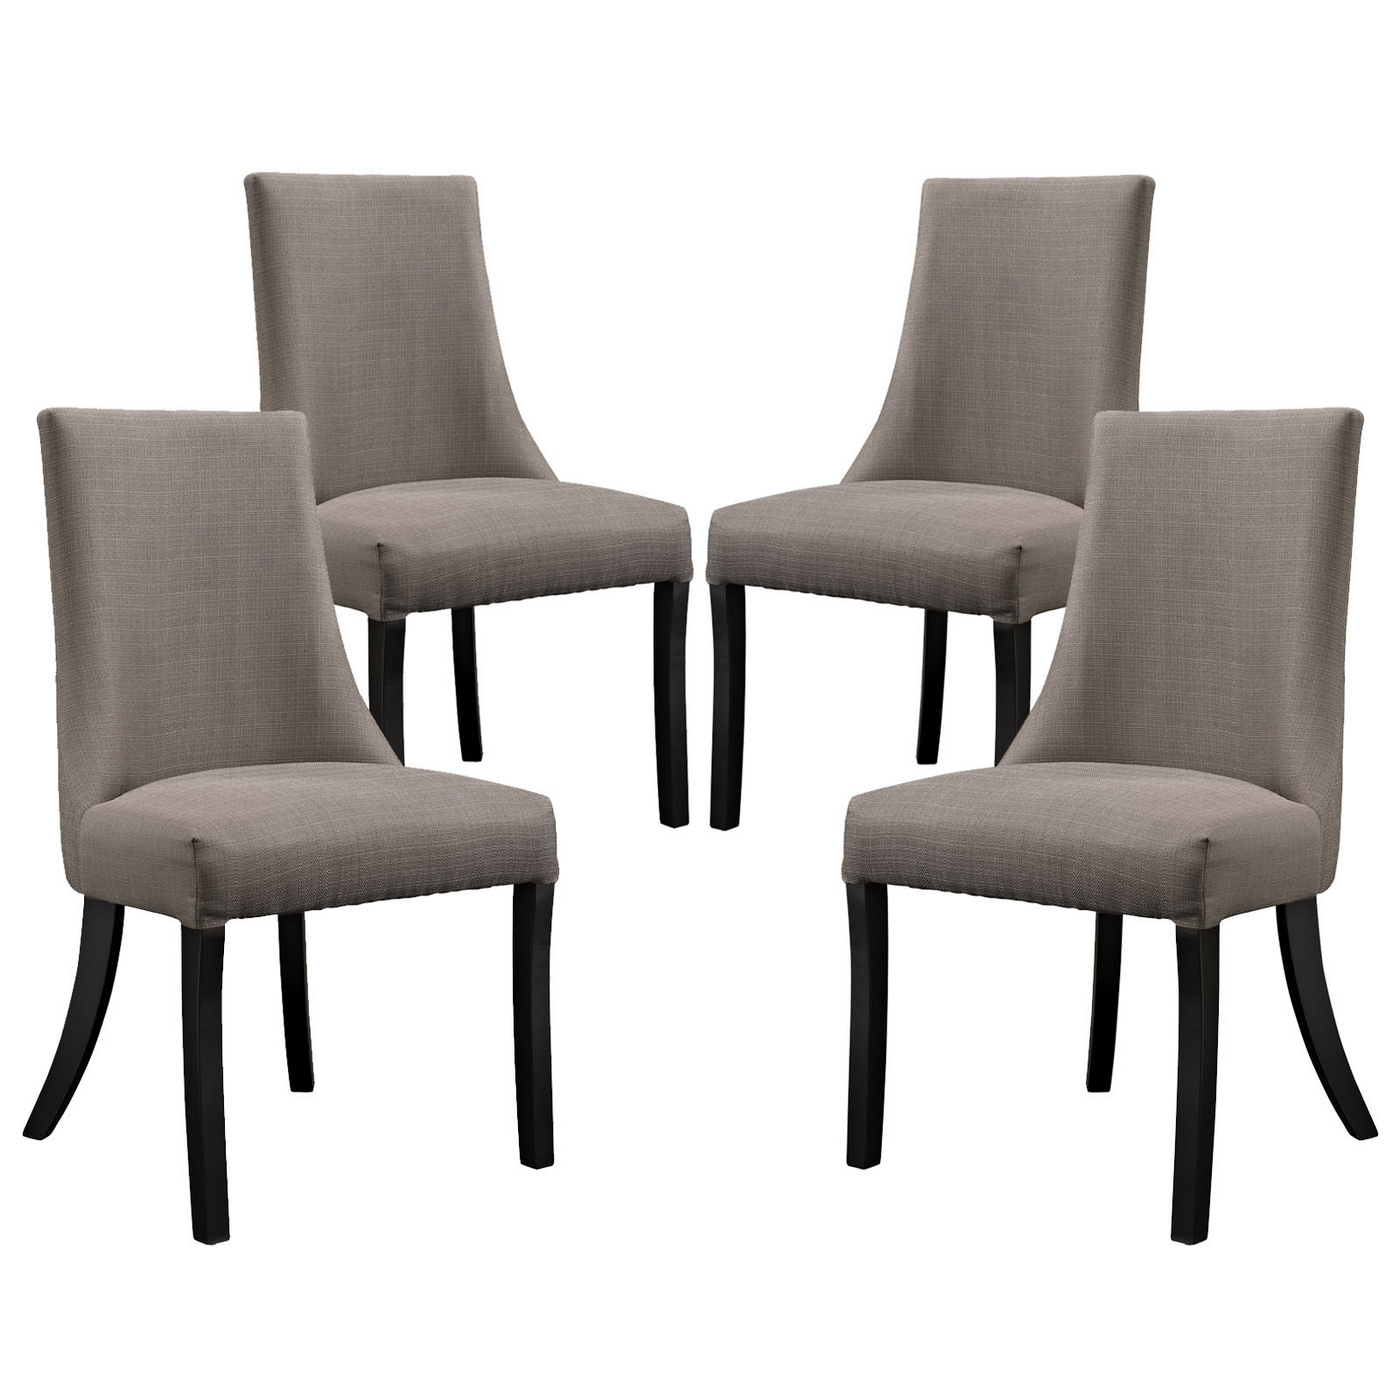 Upholstered Side Chairs Set Of 4 Reverie Upholstered Dining Side Chair With Wood